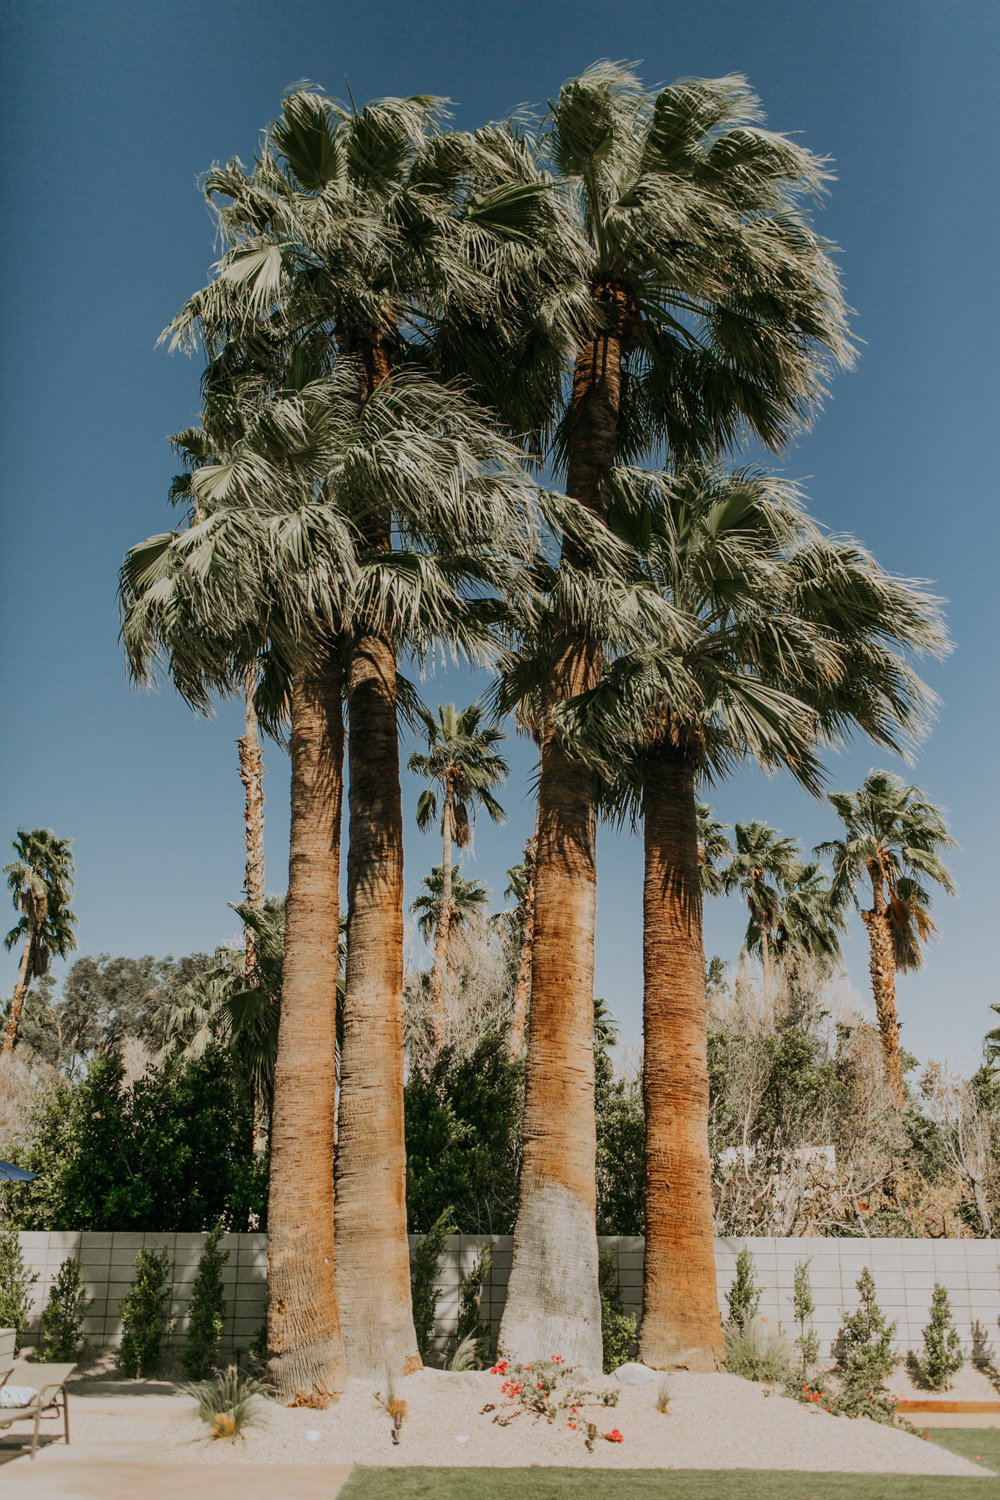 Brianna Broyles_Spencers Wedding_Palm Springs_Wedding Photographer-7